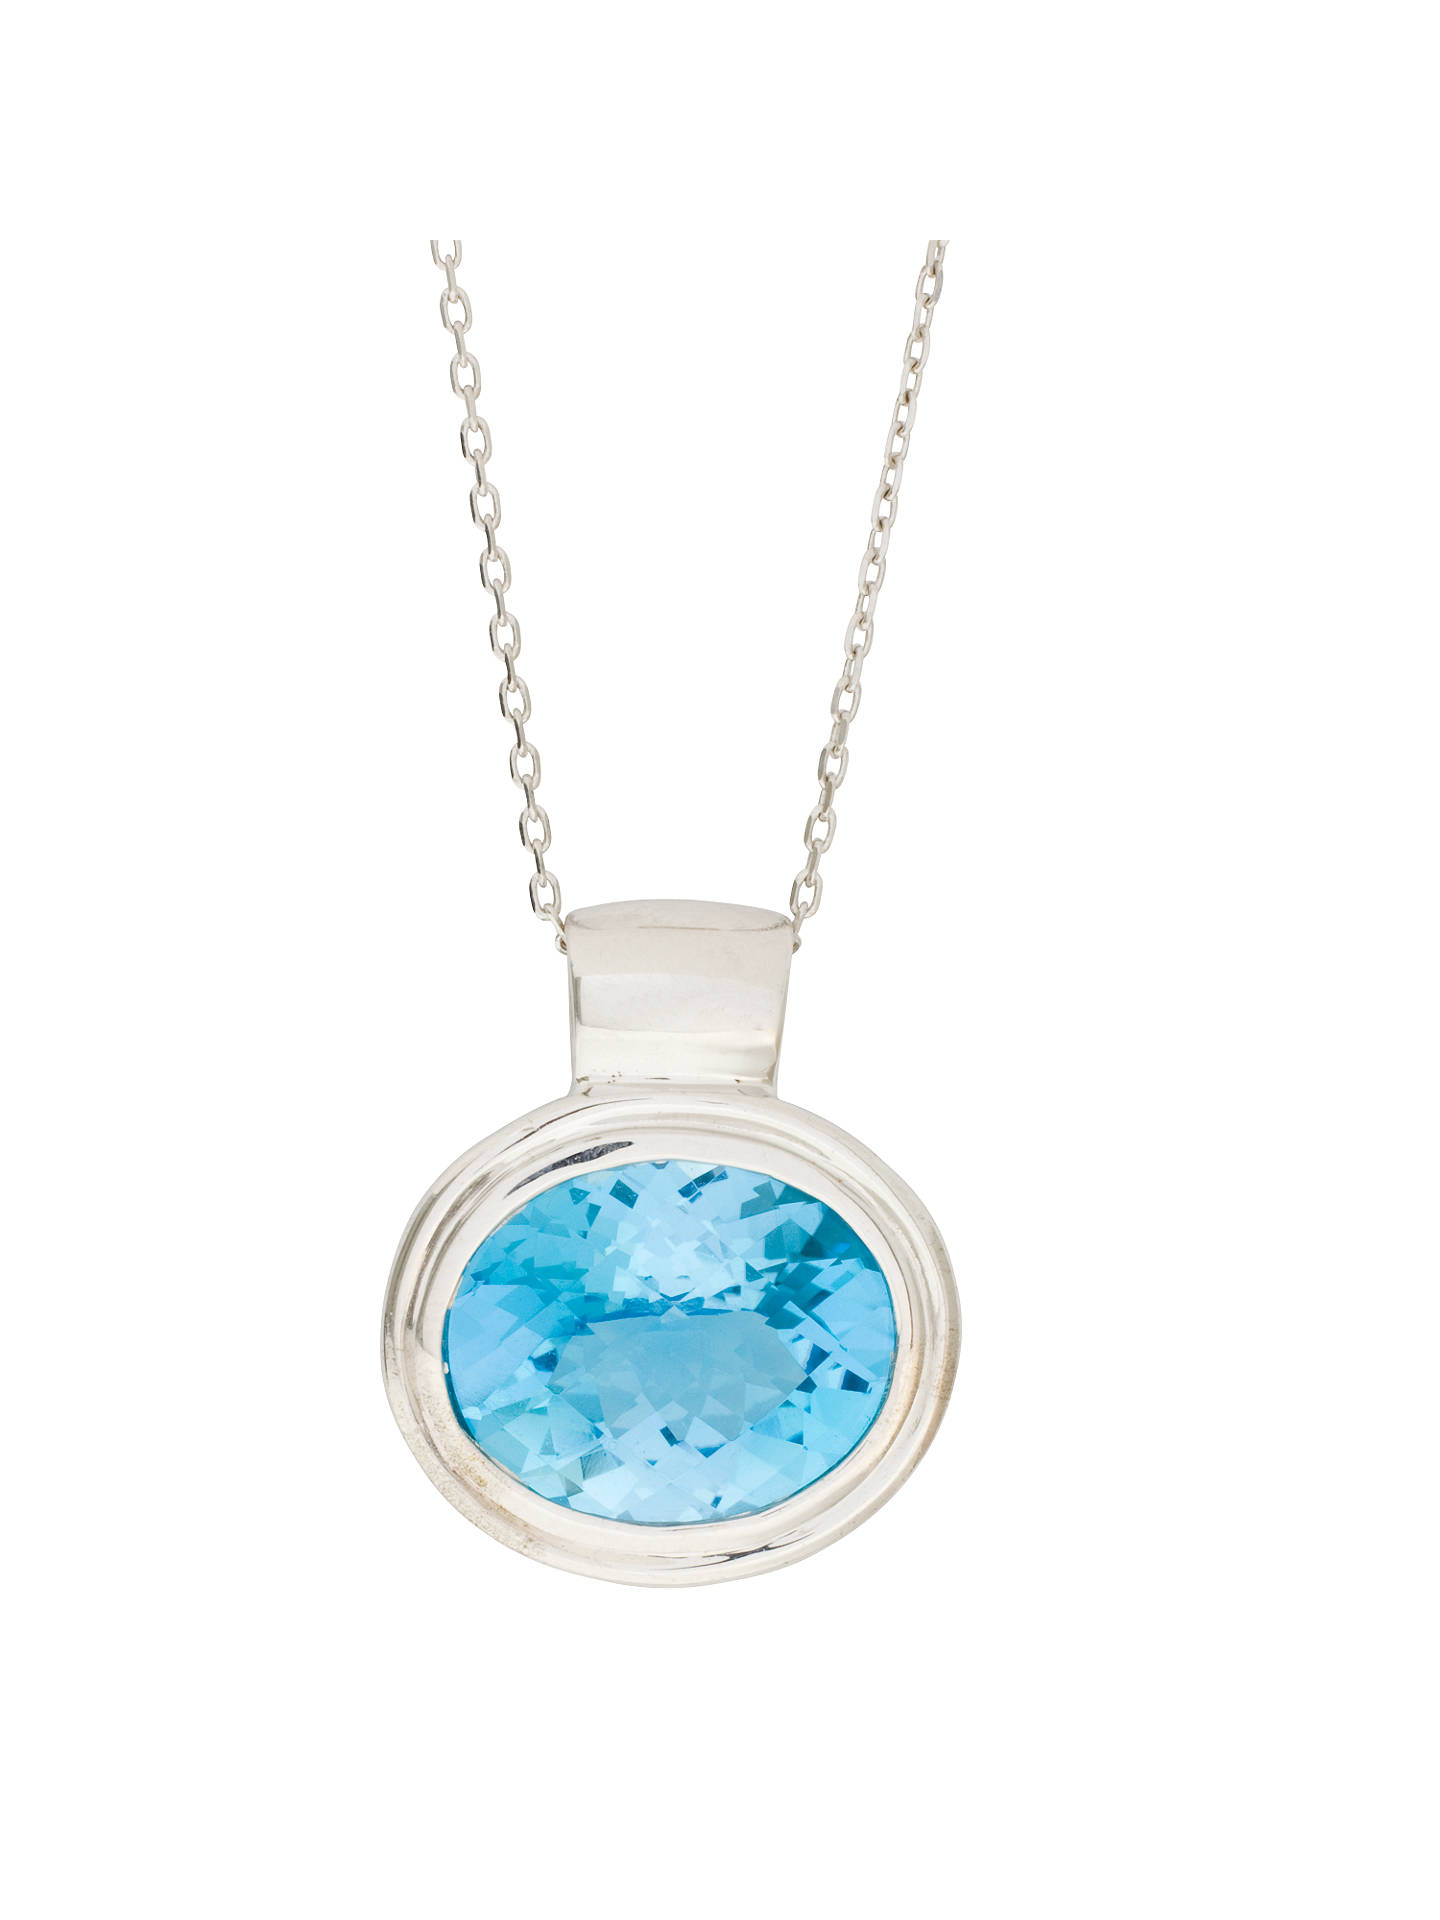 BuyLondon Road White Gold Oval Topaz Pendant Necklace Online at johnlewis.com